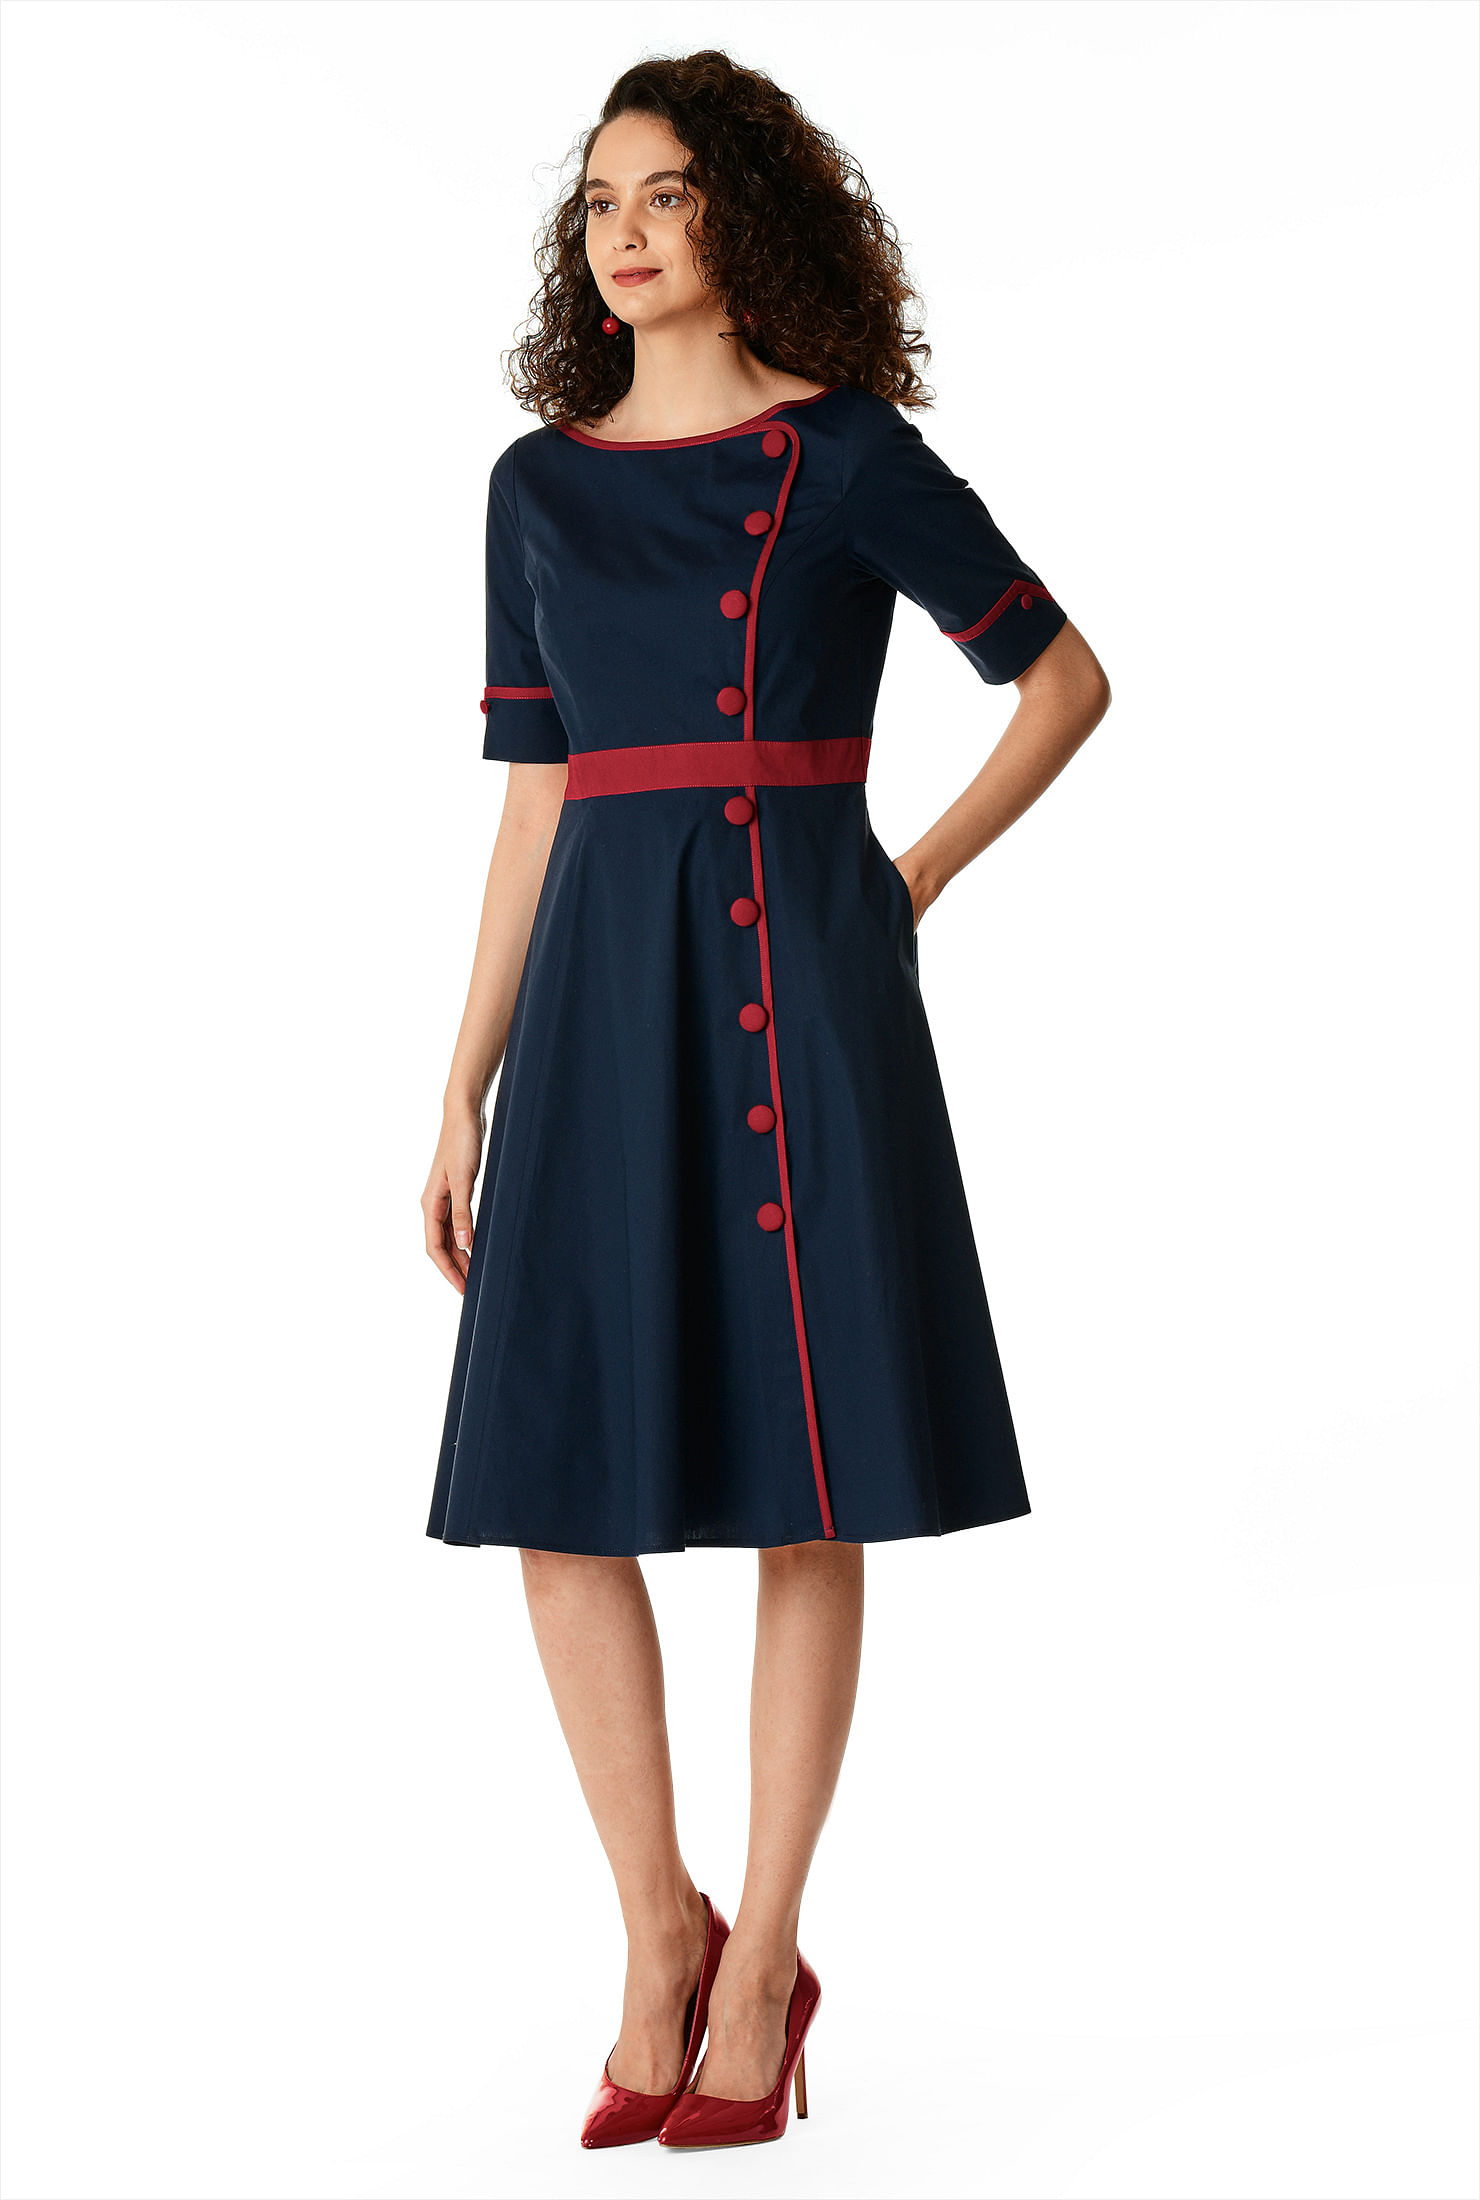 500 Vintage Style Dresses for Sale | Vintage Inspired Dresses Contrast trim cotton poplin fit-and-flare dress $59.95 AT vintagedancer.com